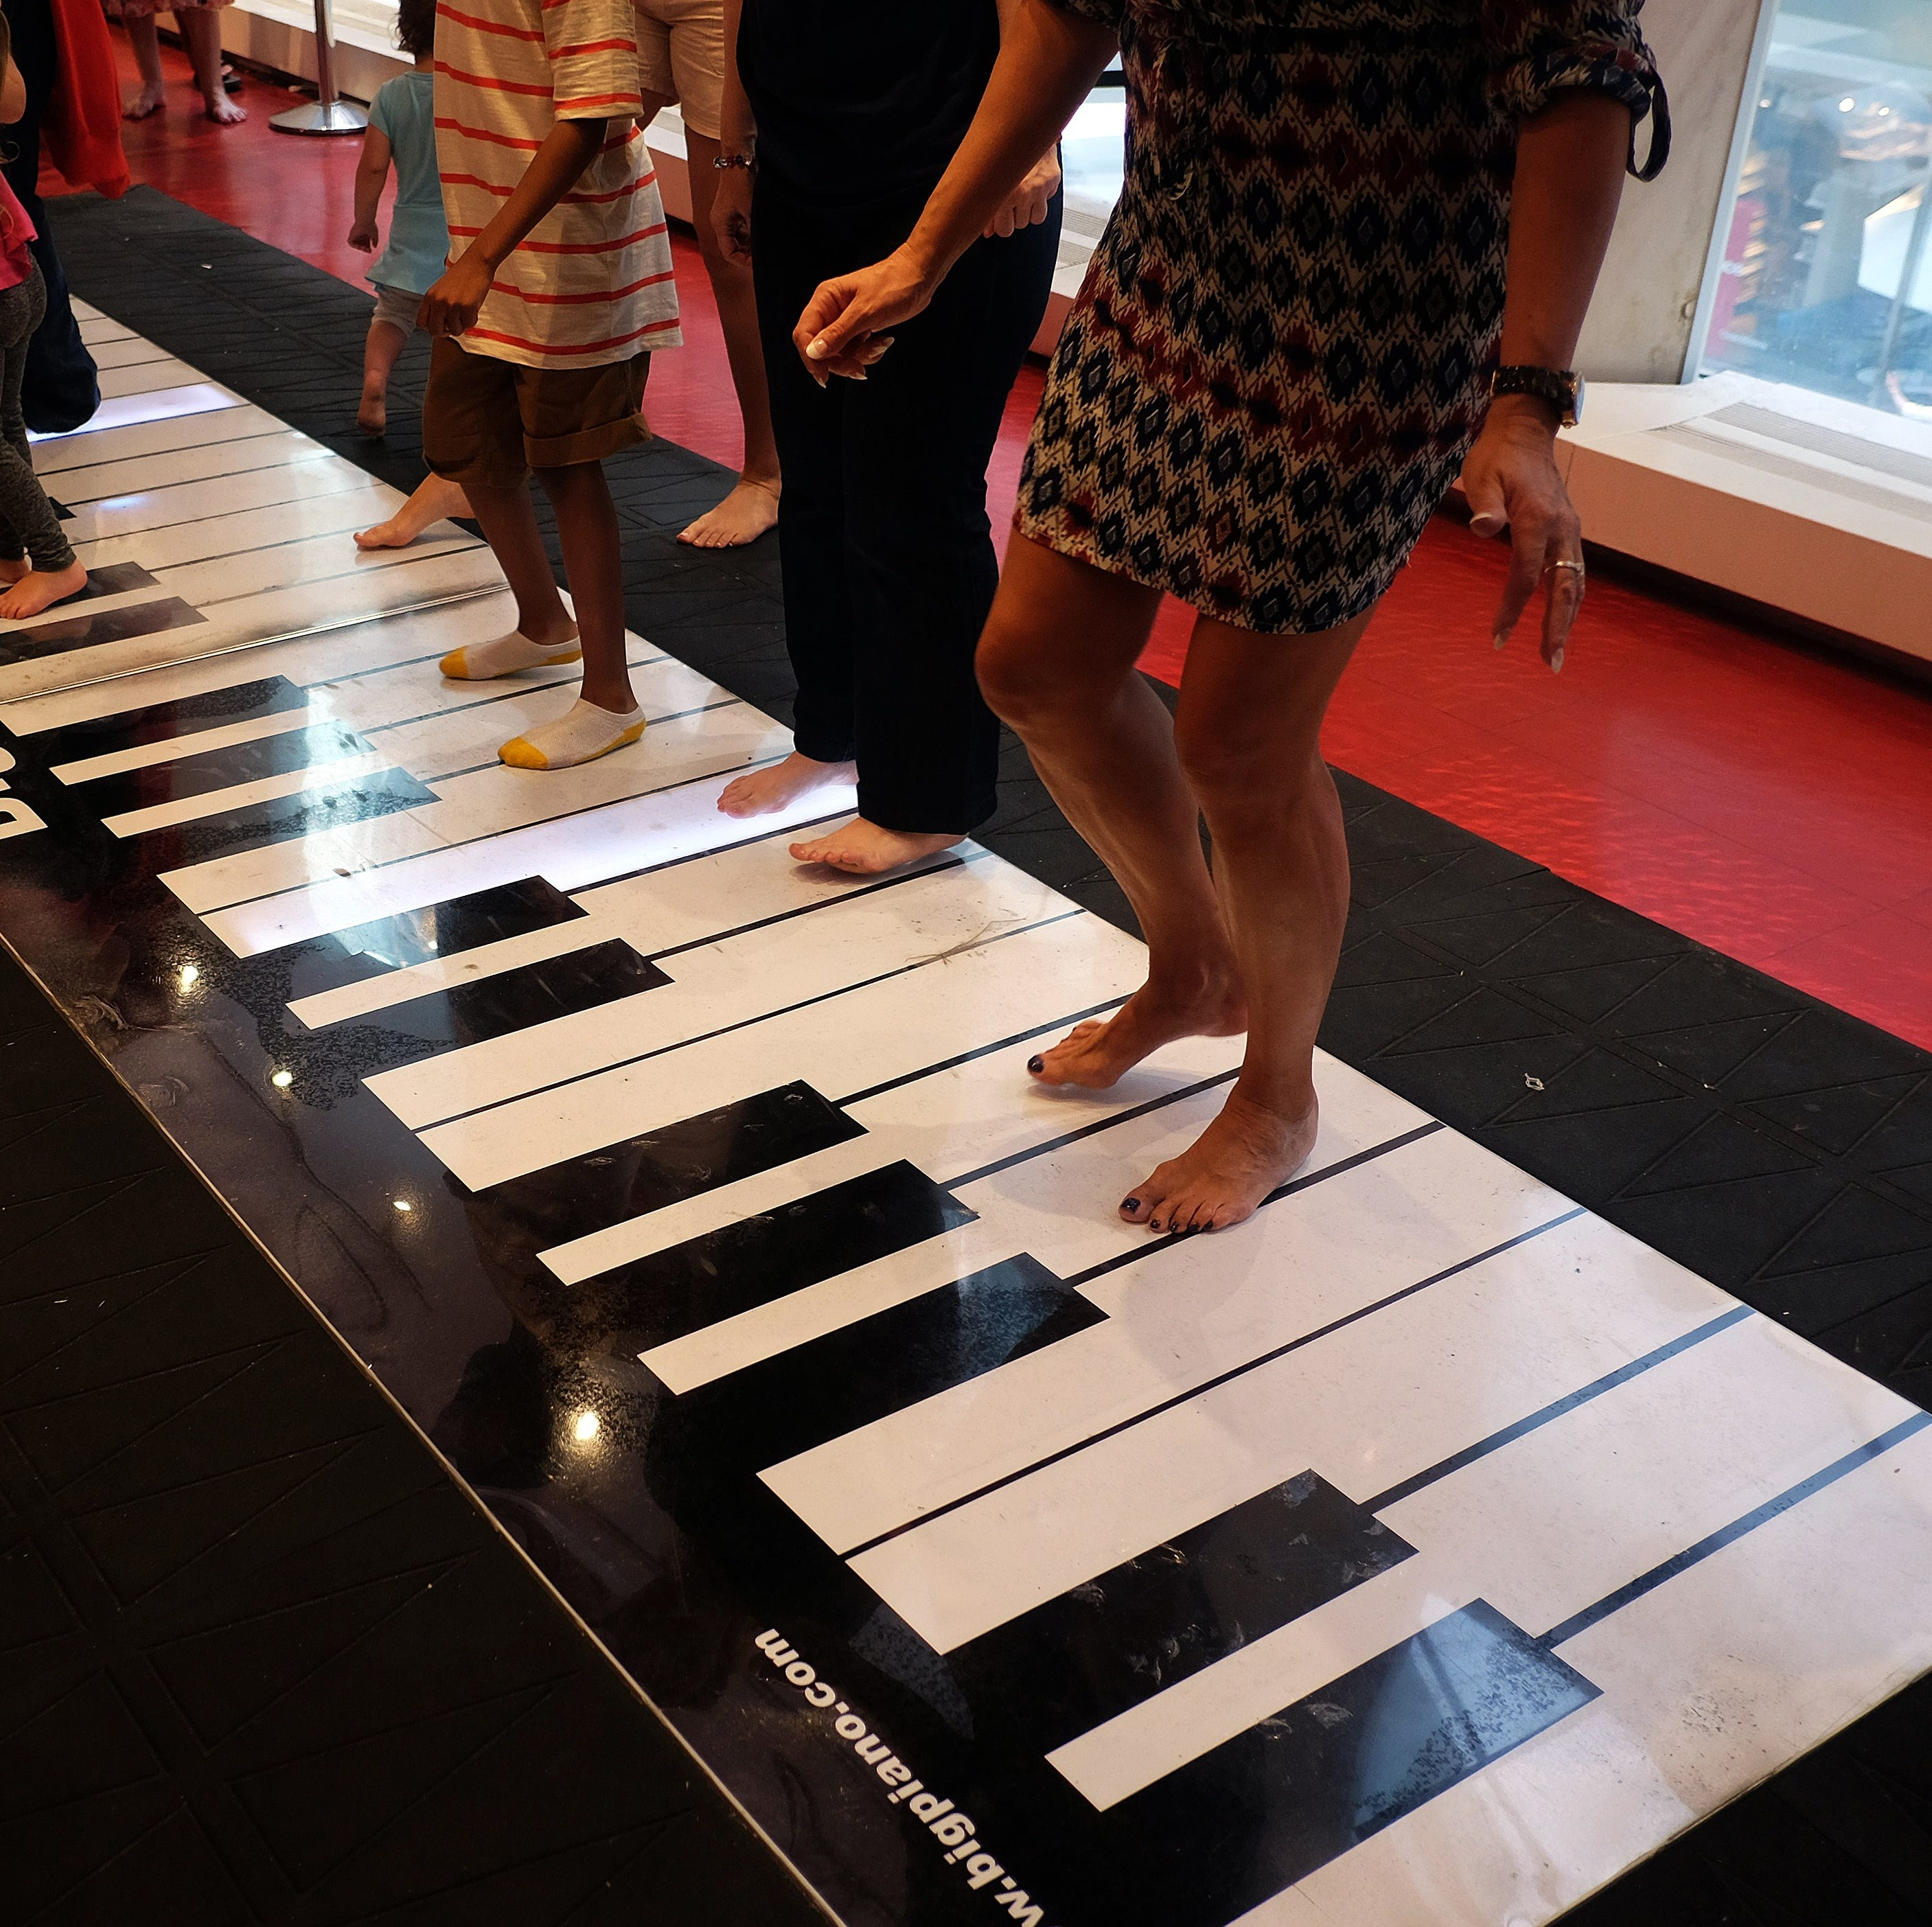 A piano like the one from 'Big' will be Downtown in these 3 places. Go play Chopsticks!